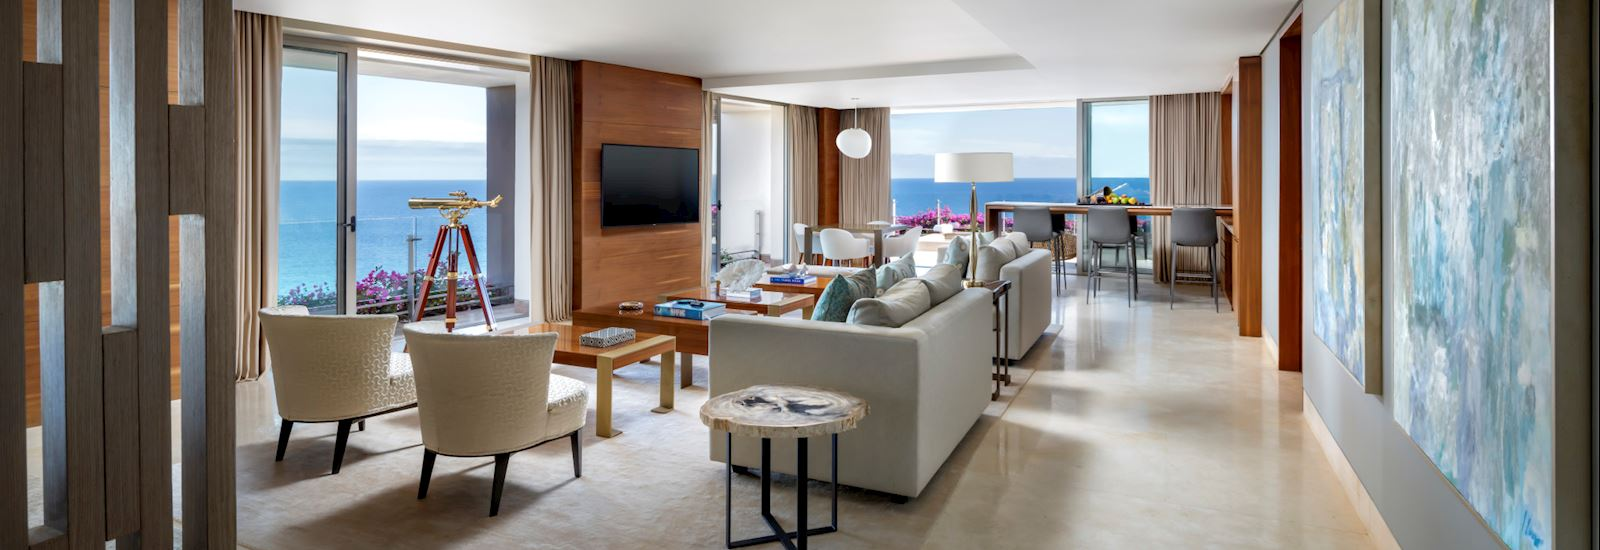 Royal Suite Ocean Front View at Grand Velas Los Cabos